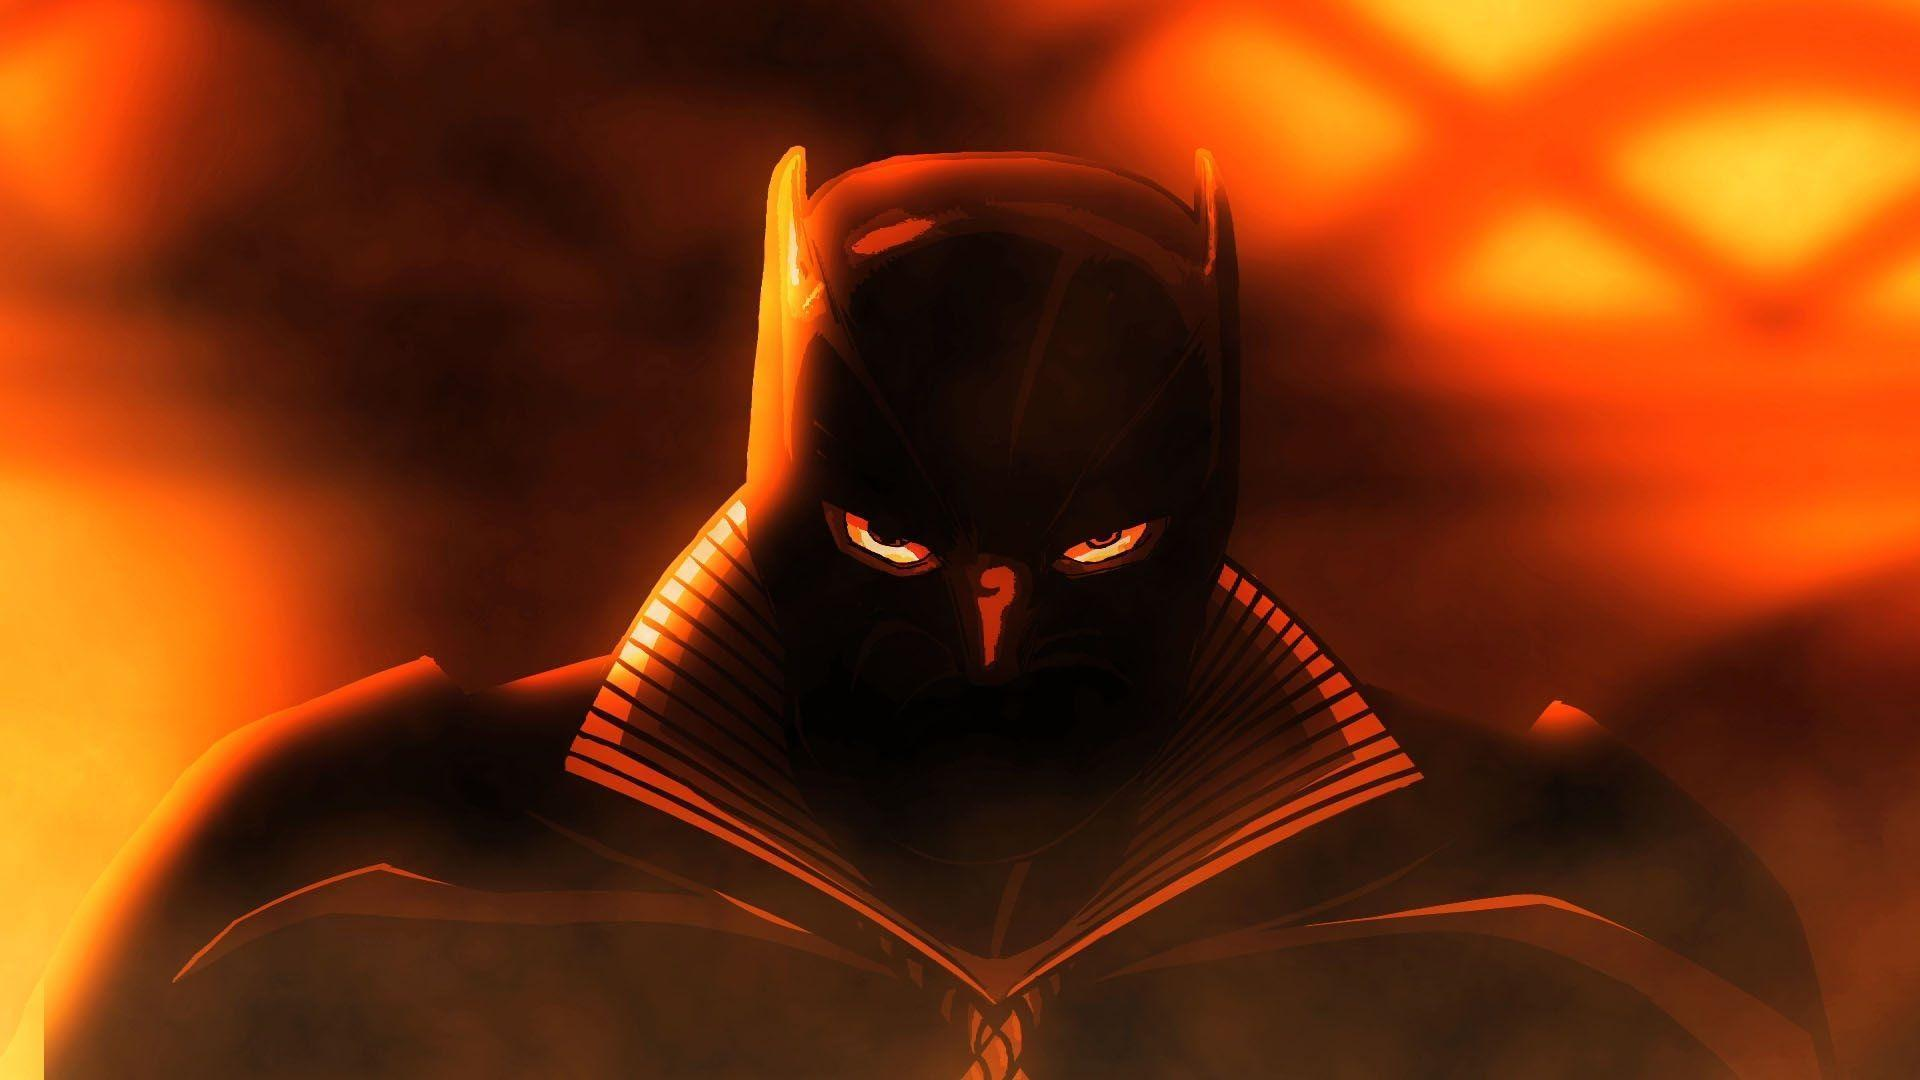 black panther wallpapers, black panther hd wallpaper for pc